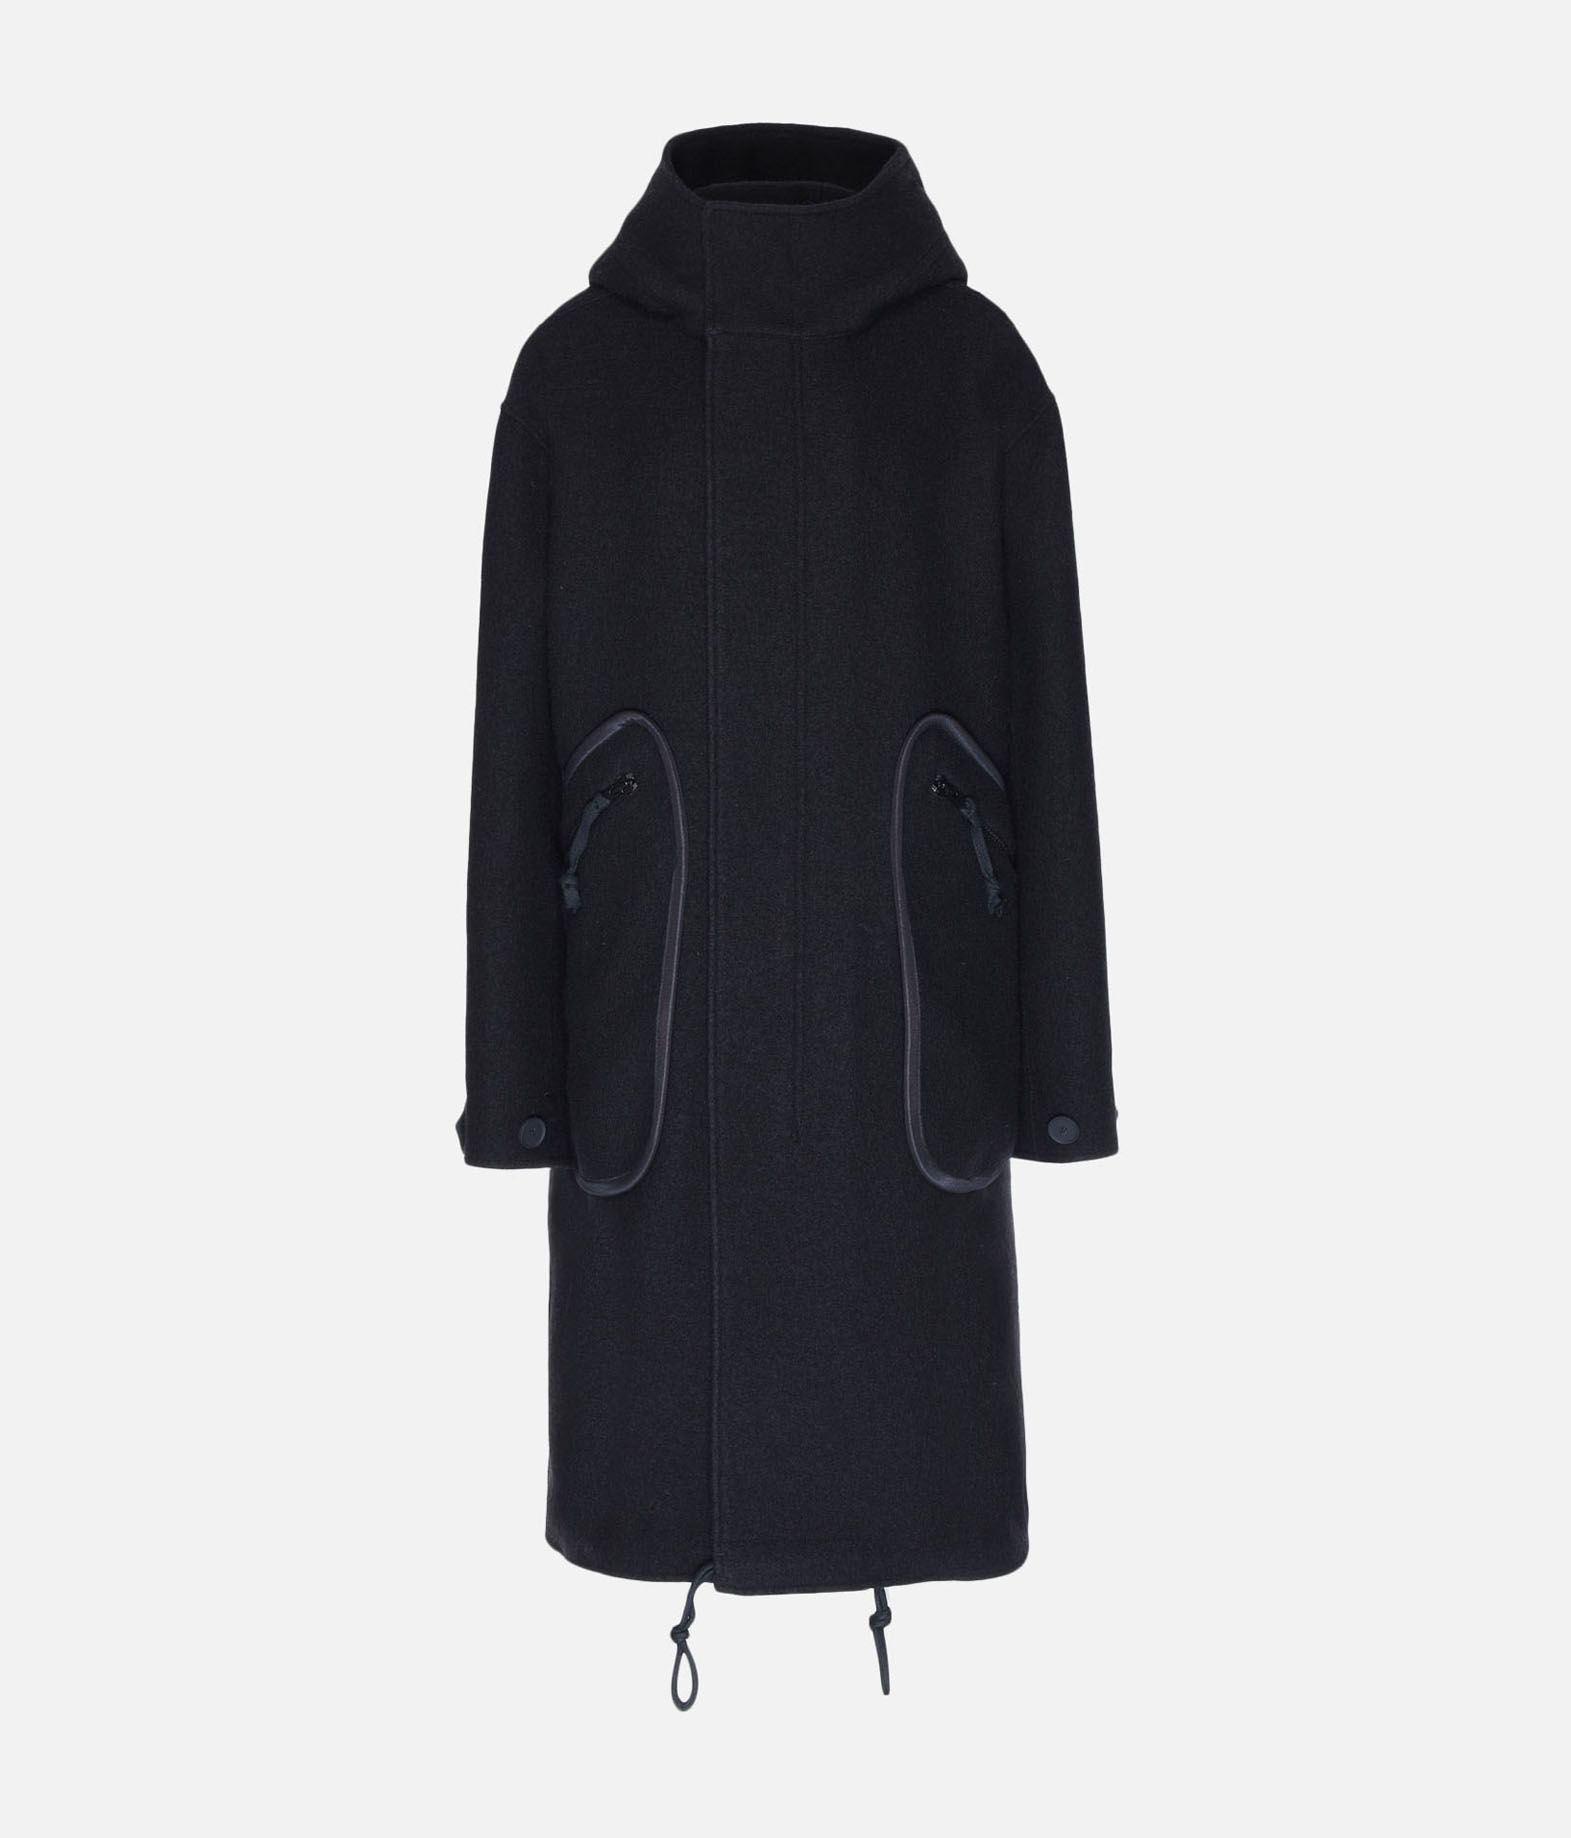 Y-3 Y-3 Reversible Wool Parka Coat Woman f